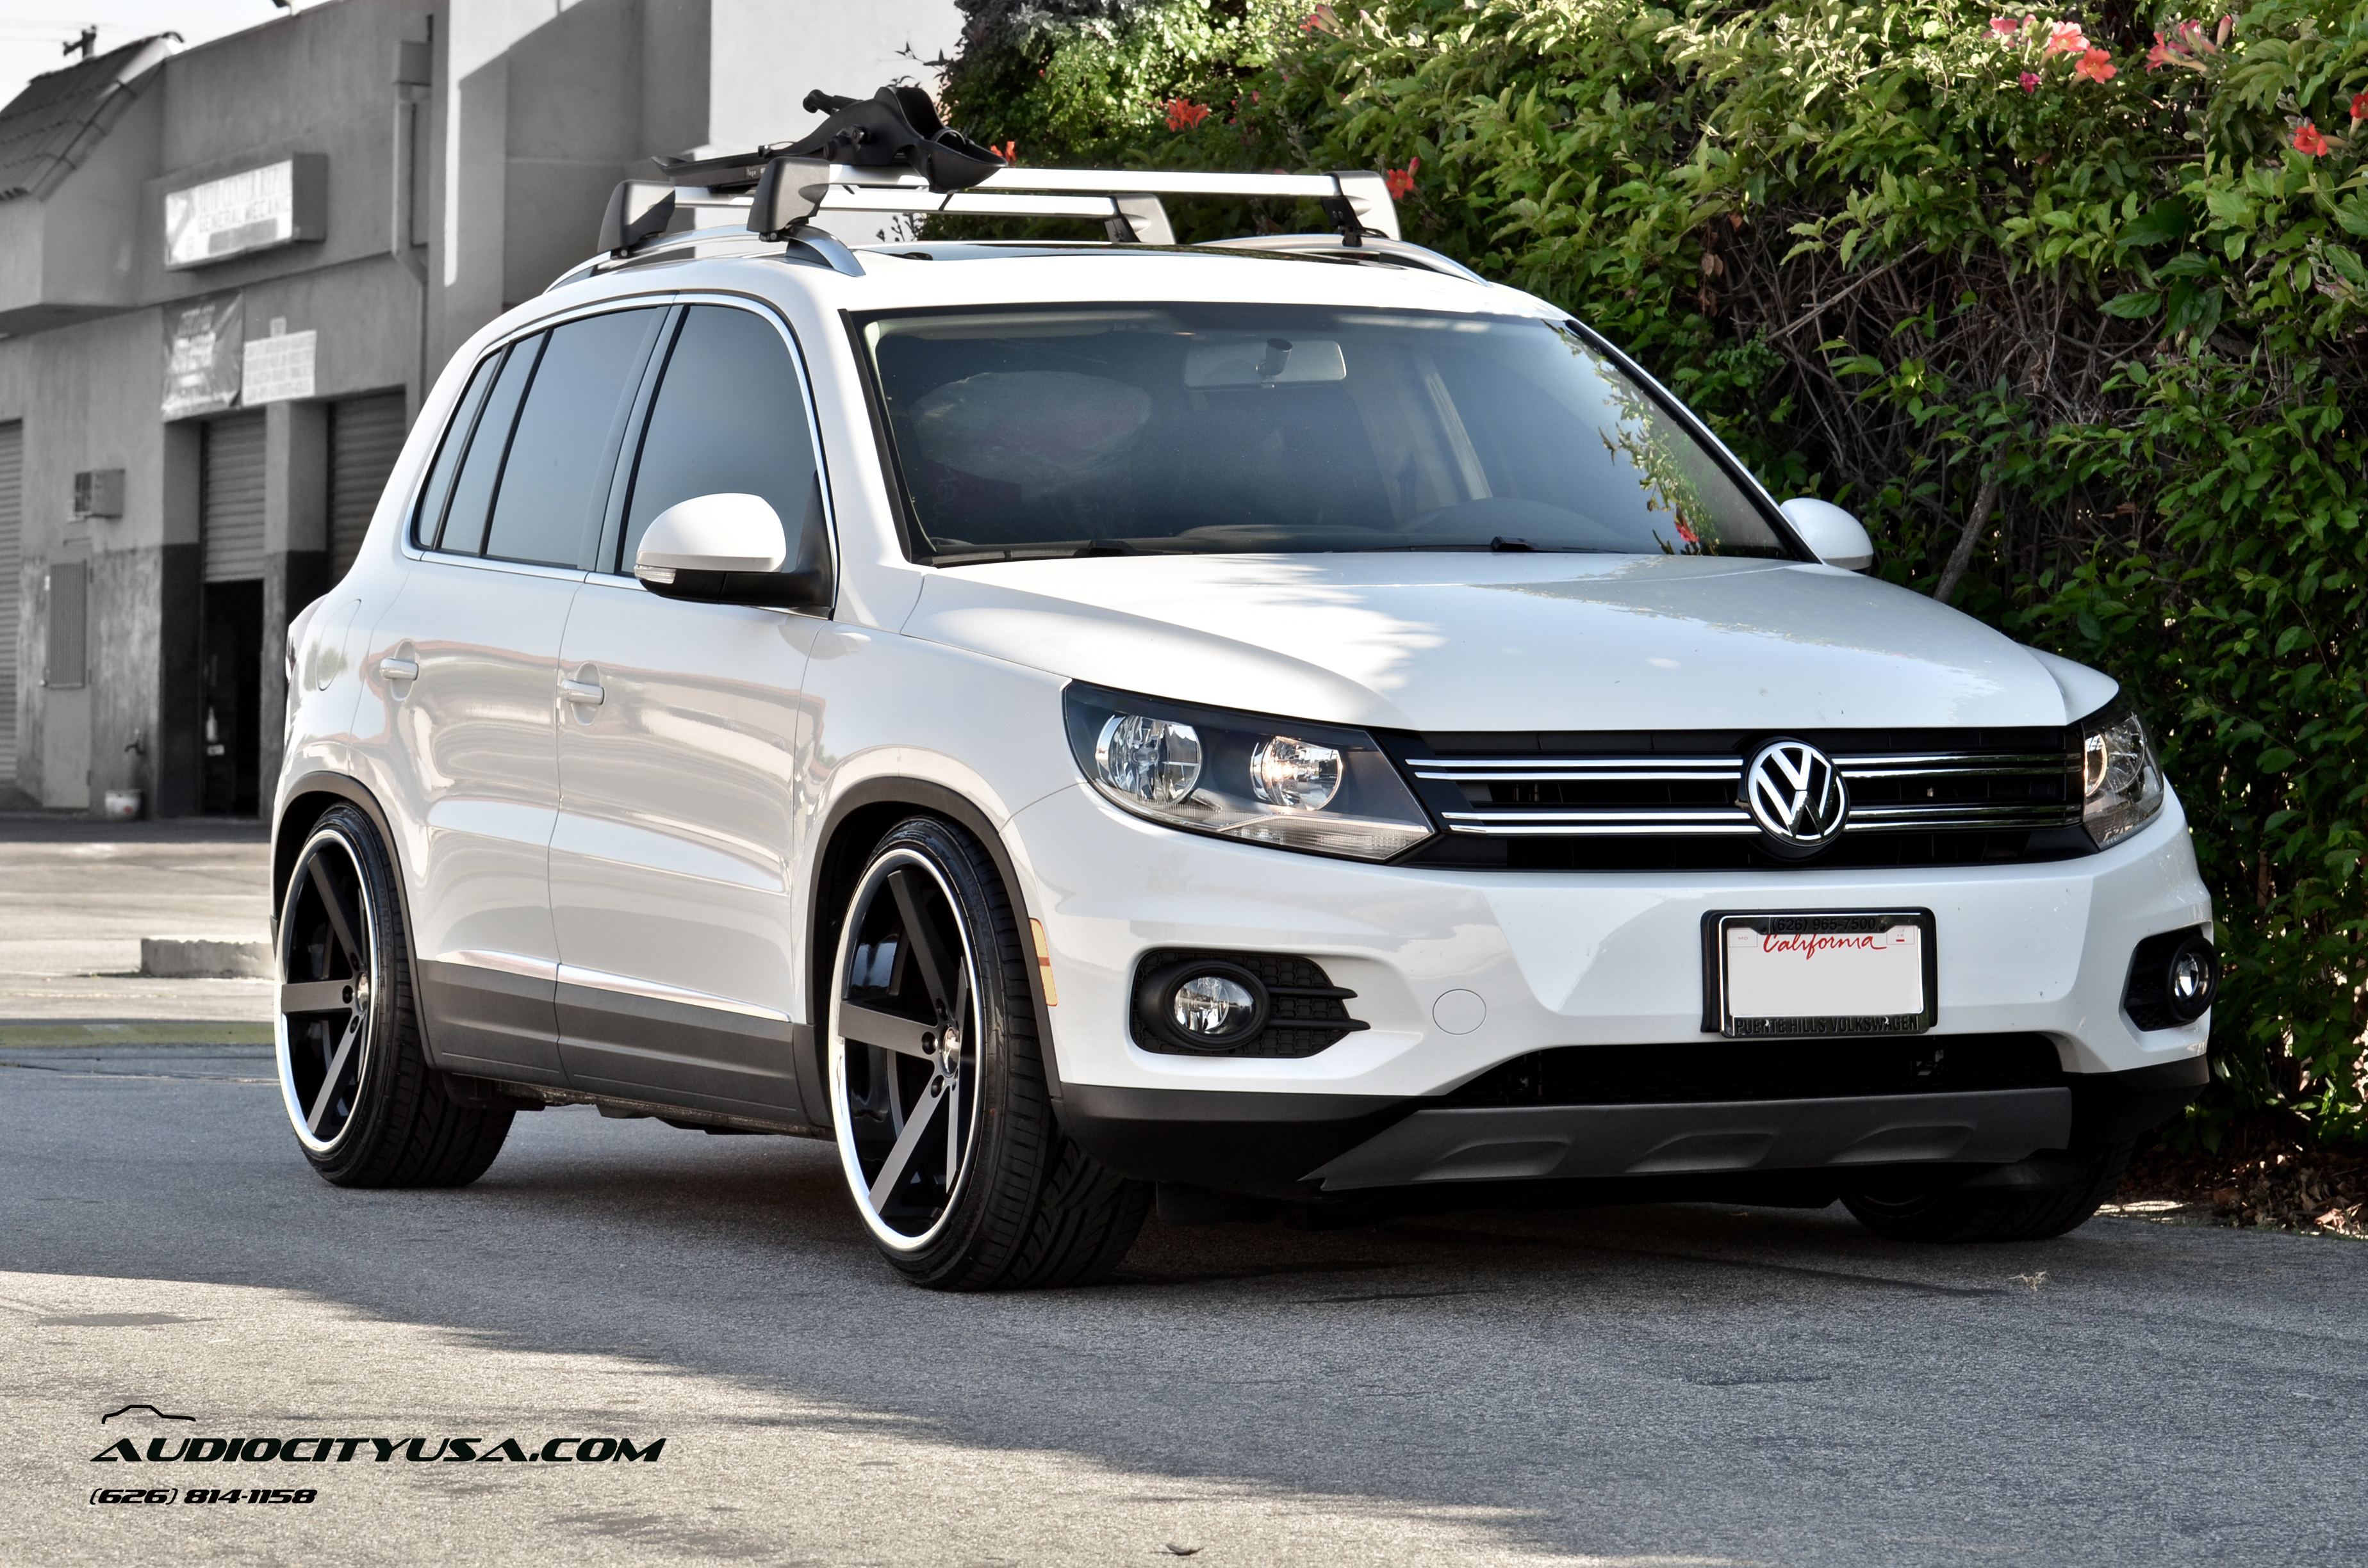 Giovanna Mecca Black 20X10 on 2013 Volkswagen Tiguan